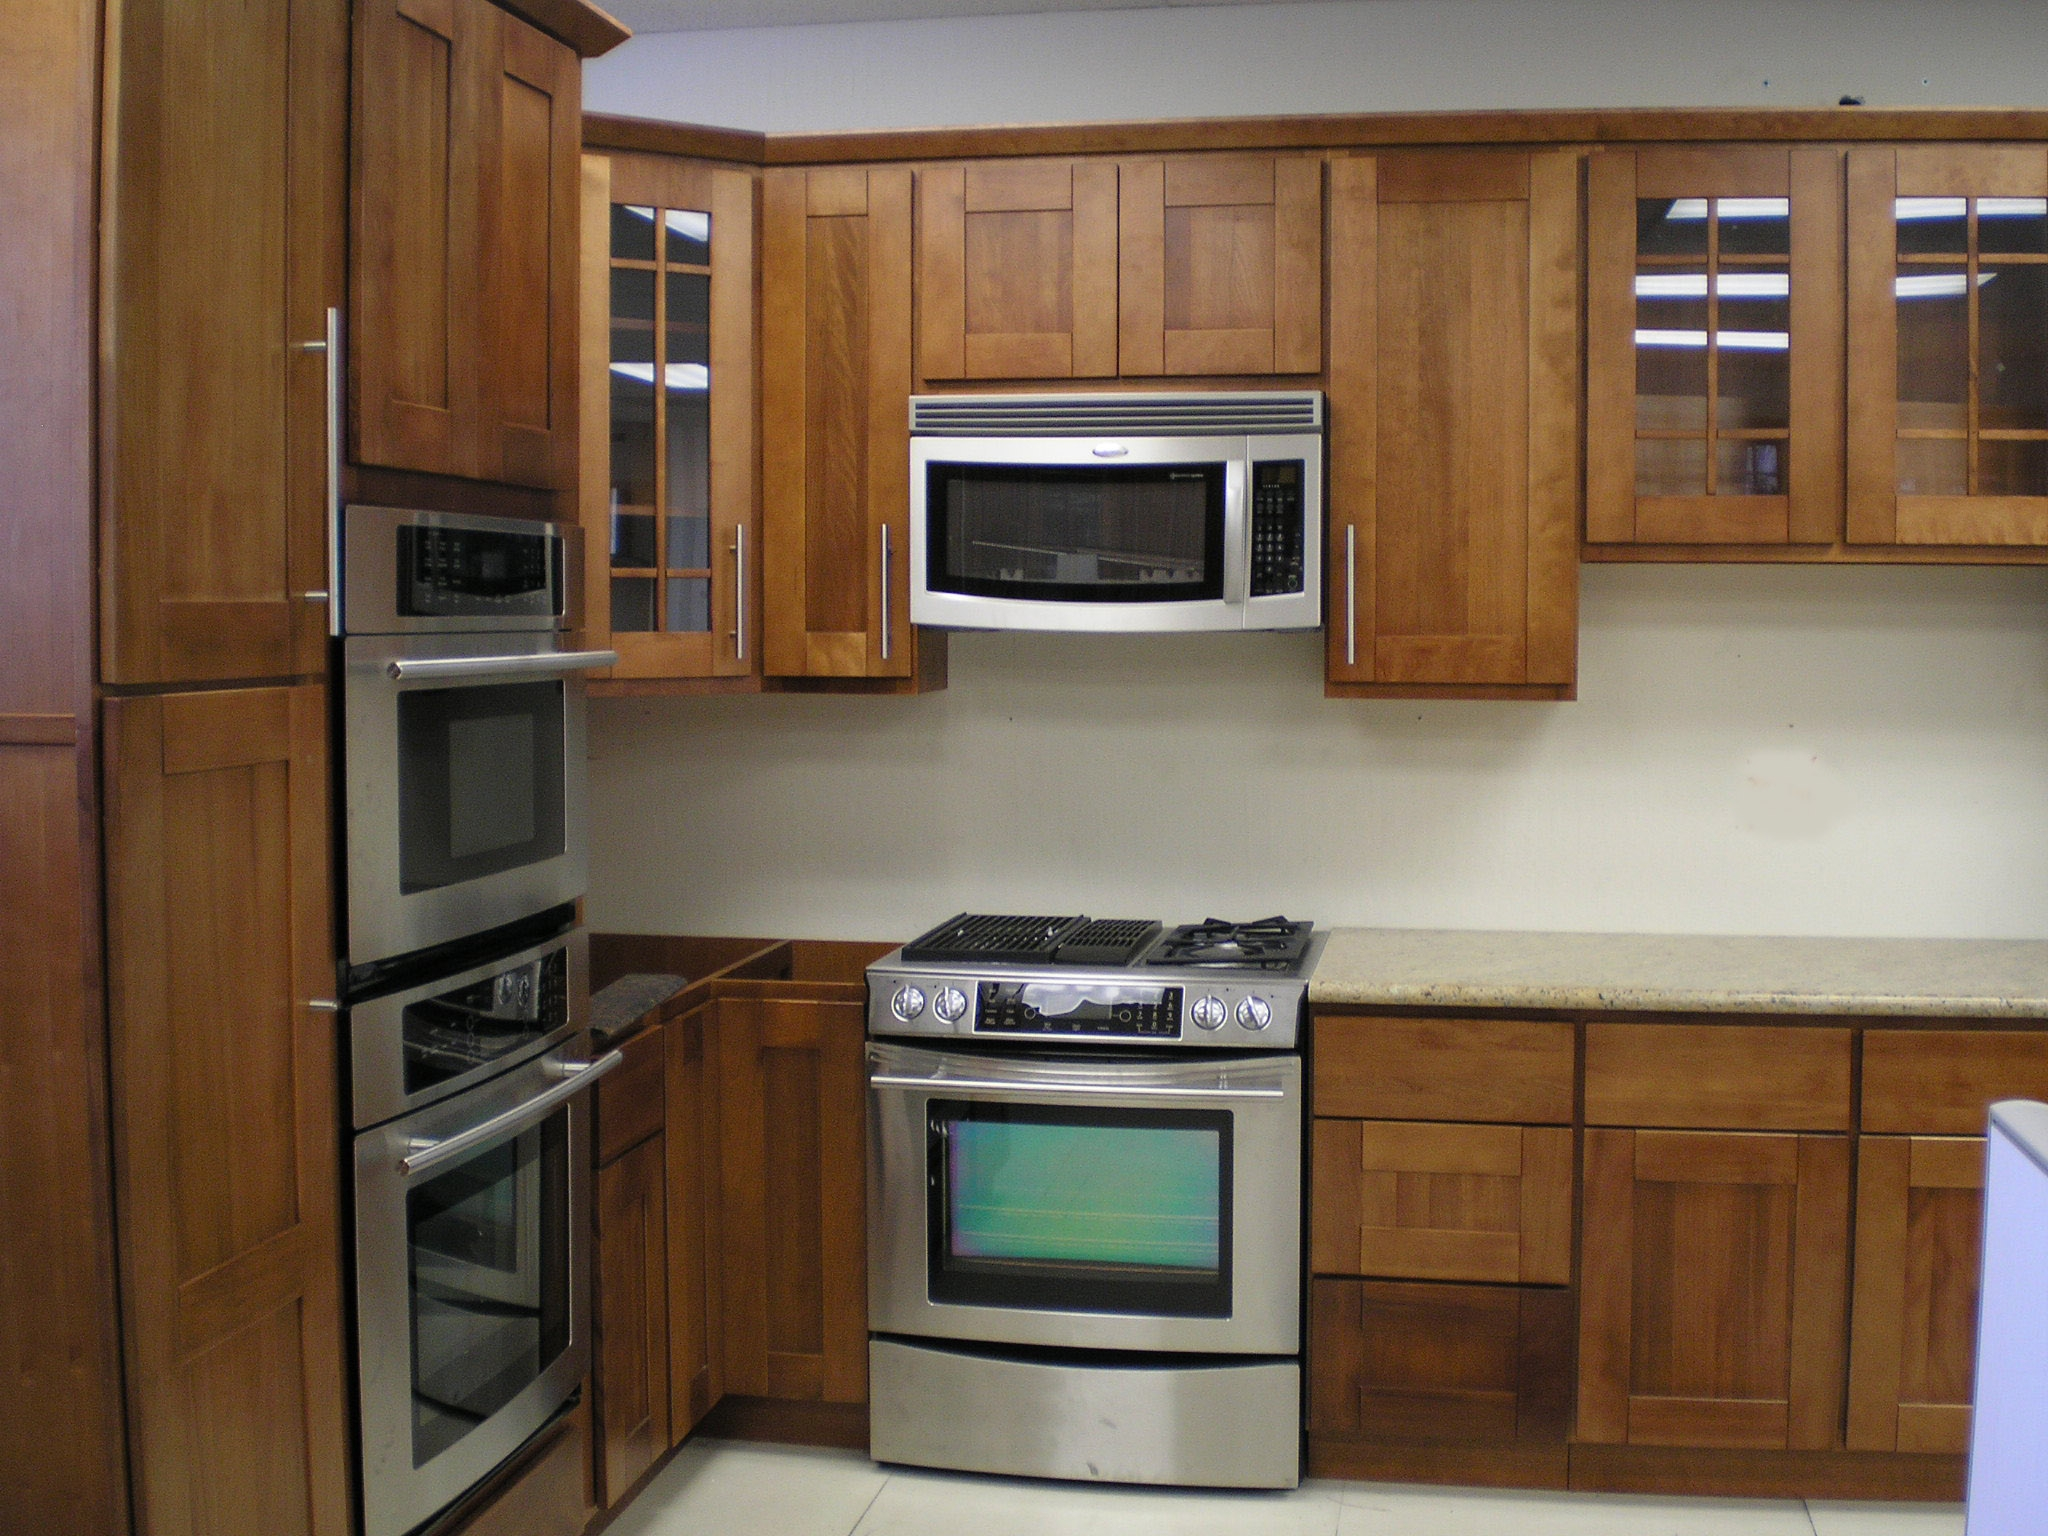 Permalink to Microwave Kitchen Cabinets Design